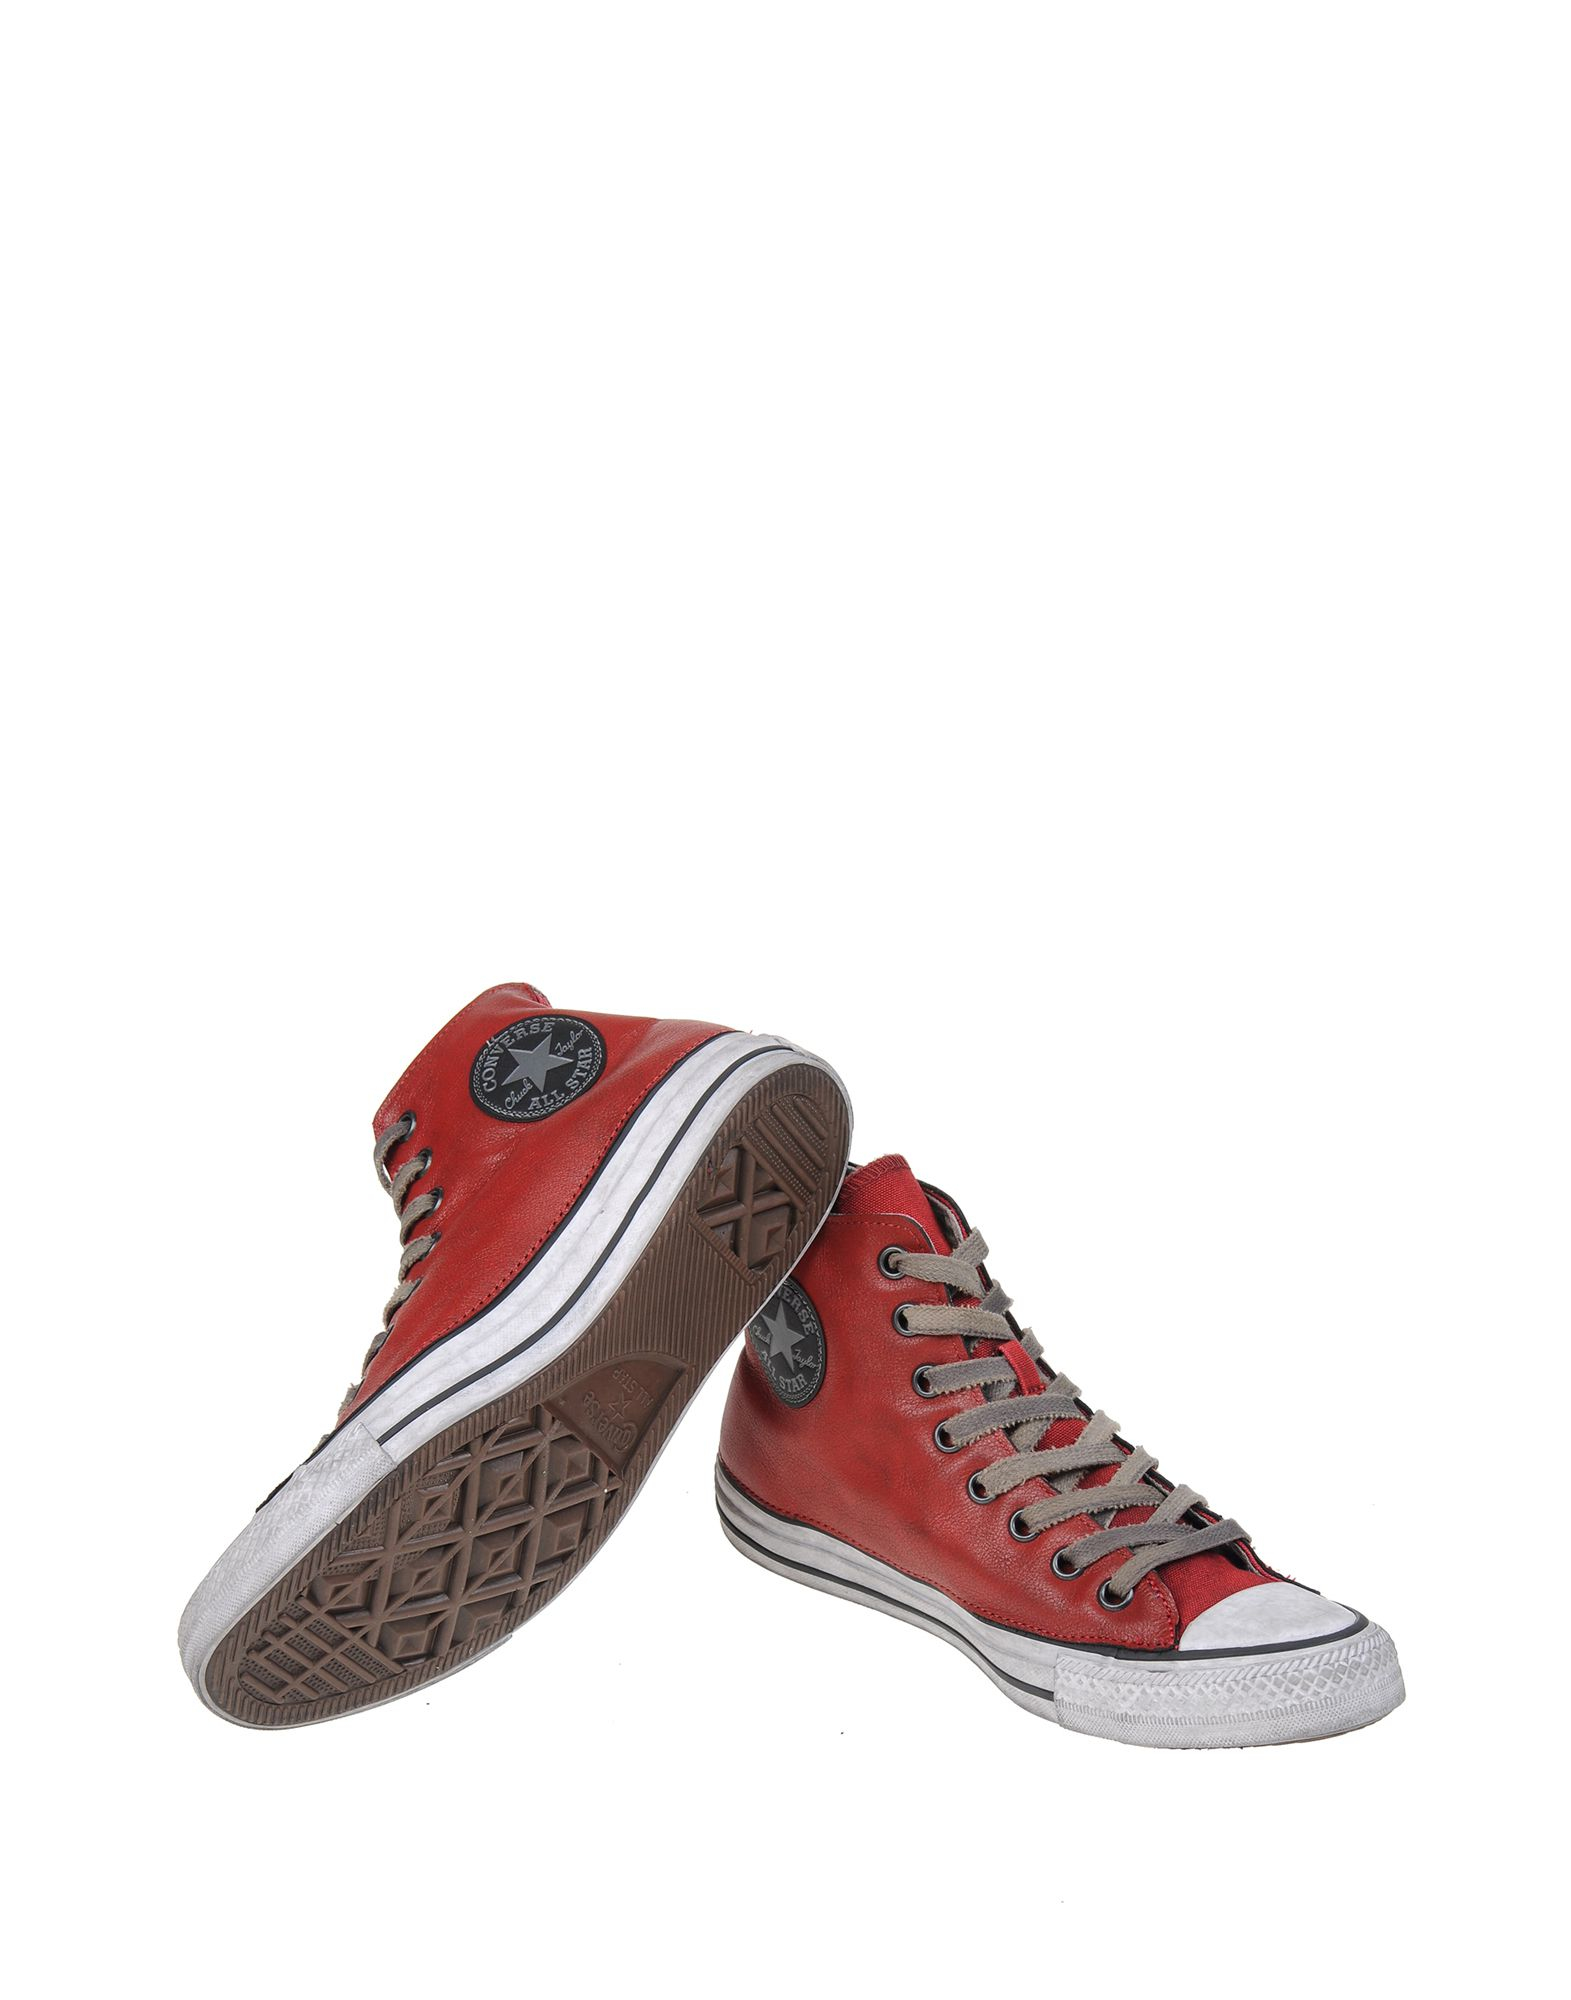 Lyst - Converse High-tops & Sneakers in Red for Men